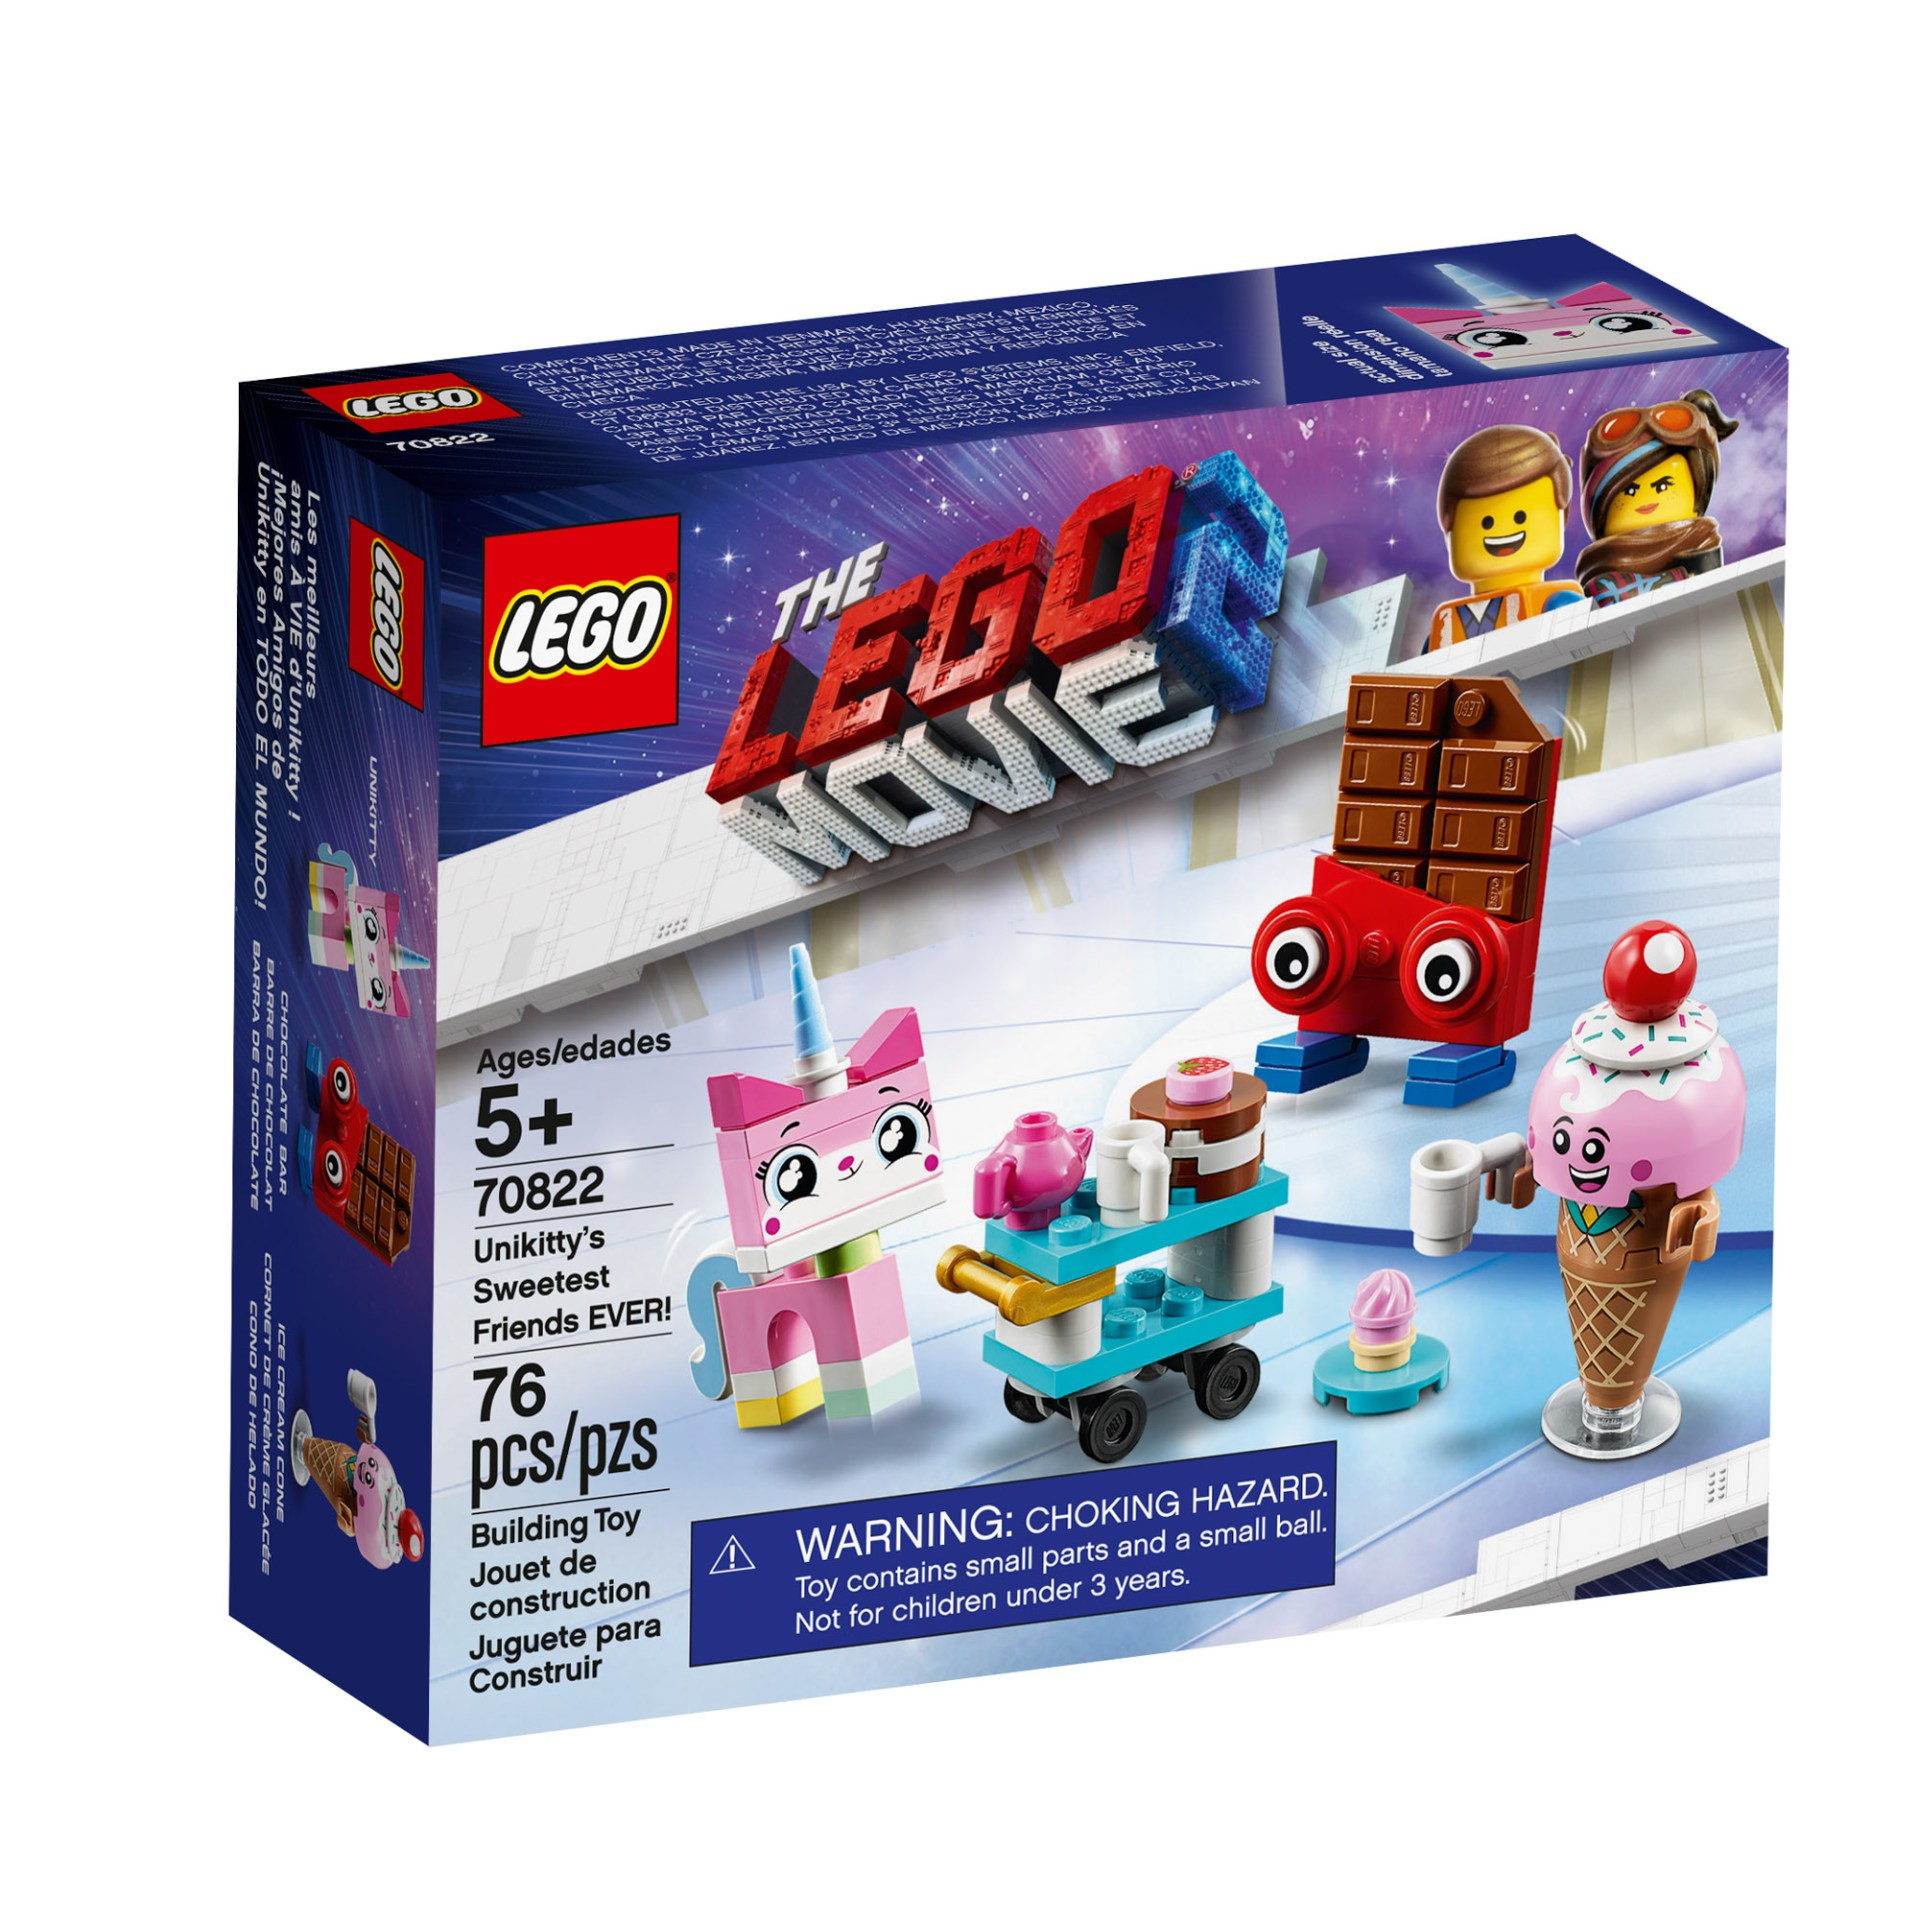 70822 — Unikitty's Sweetest Friends EVER!